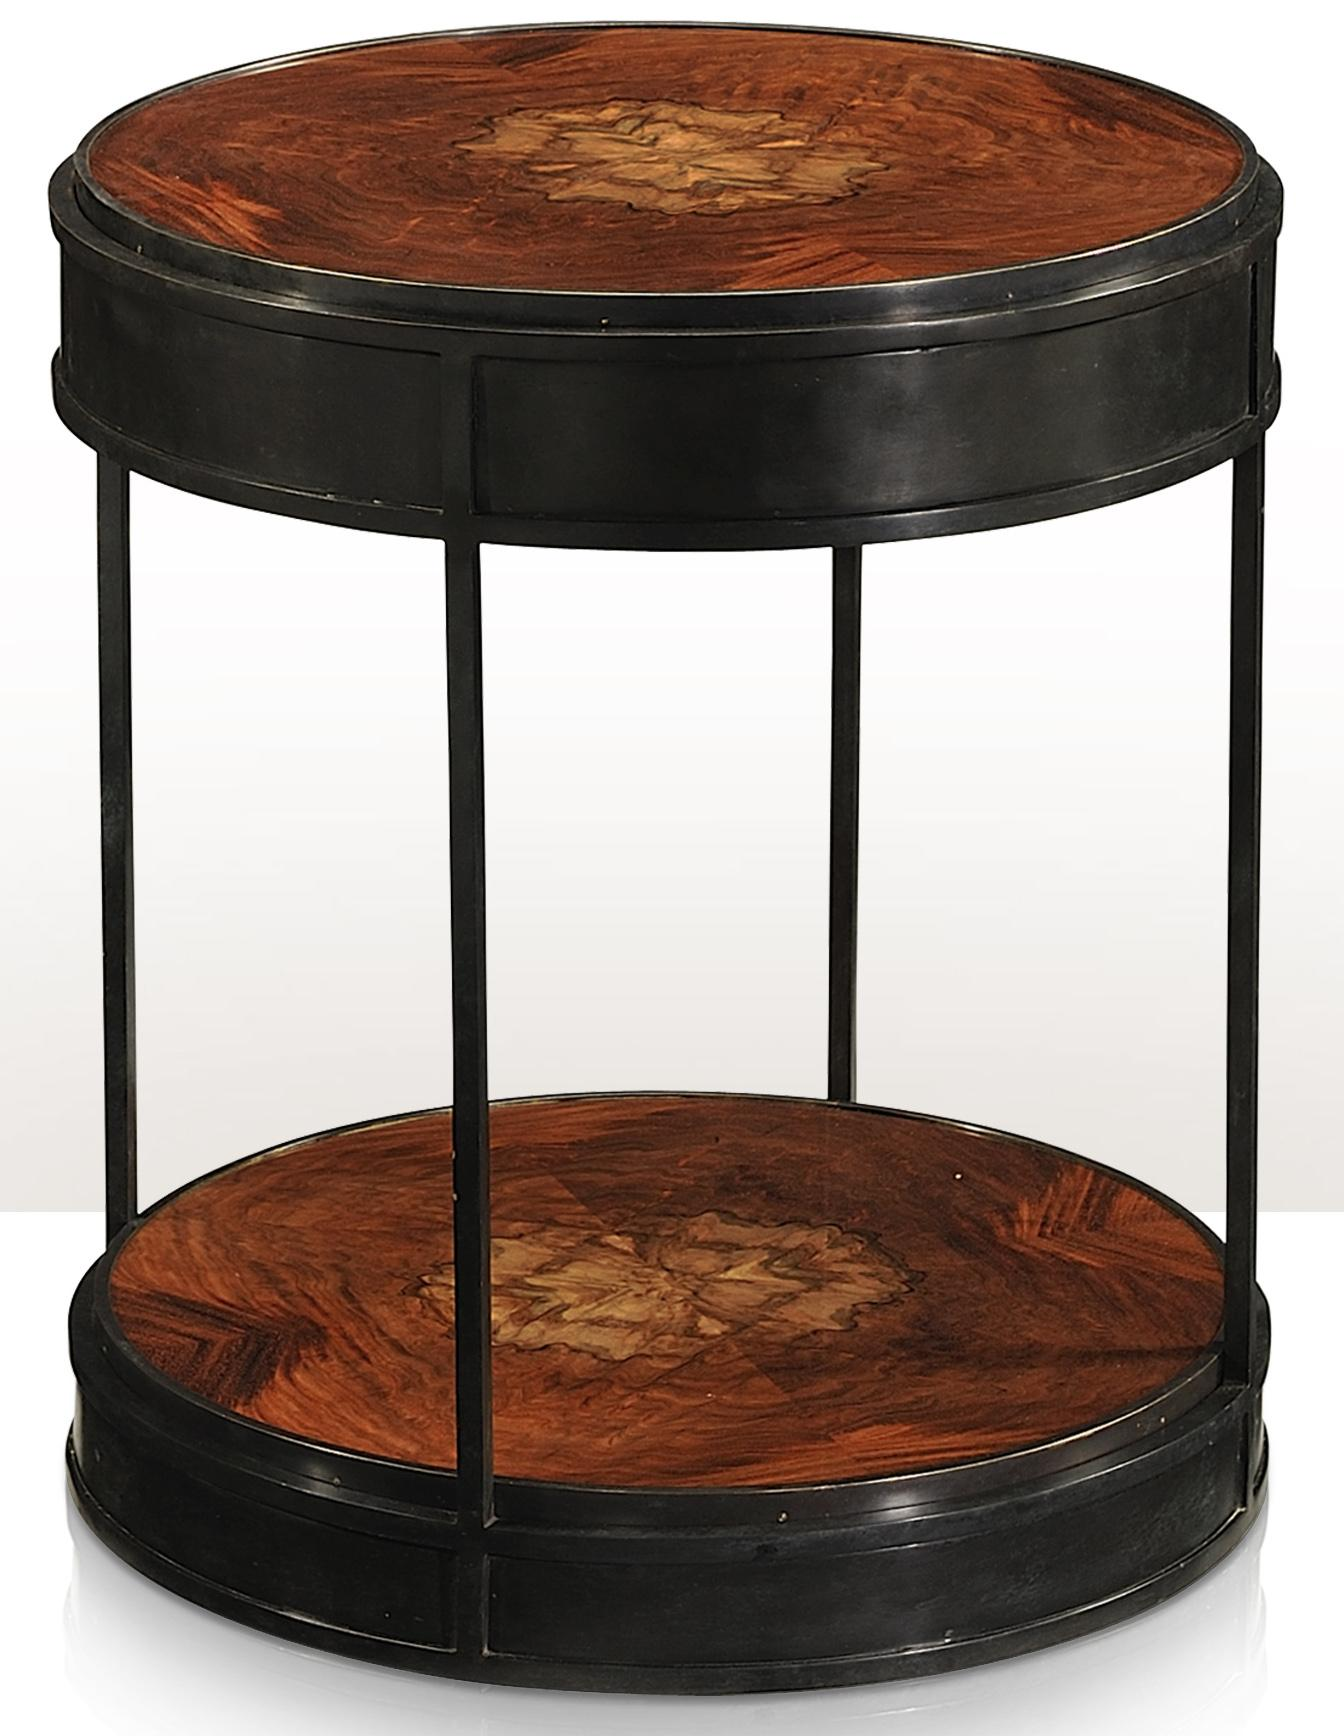 Vanucci Eclectics Lamp Table by Theodore Alexander at Baer's Furniture